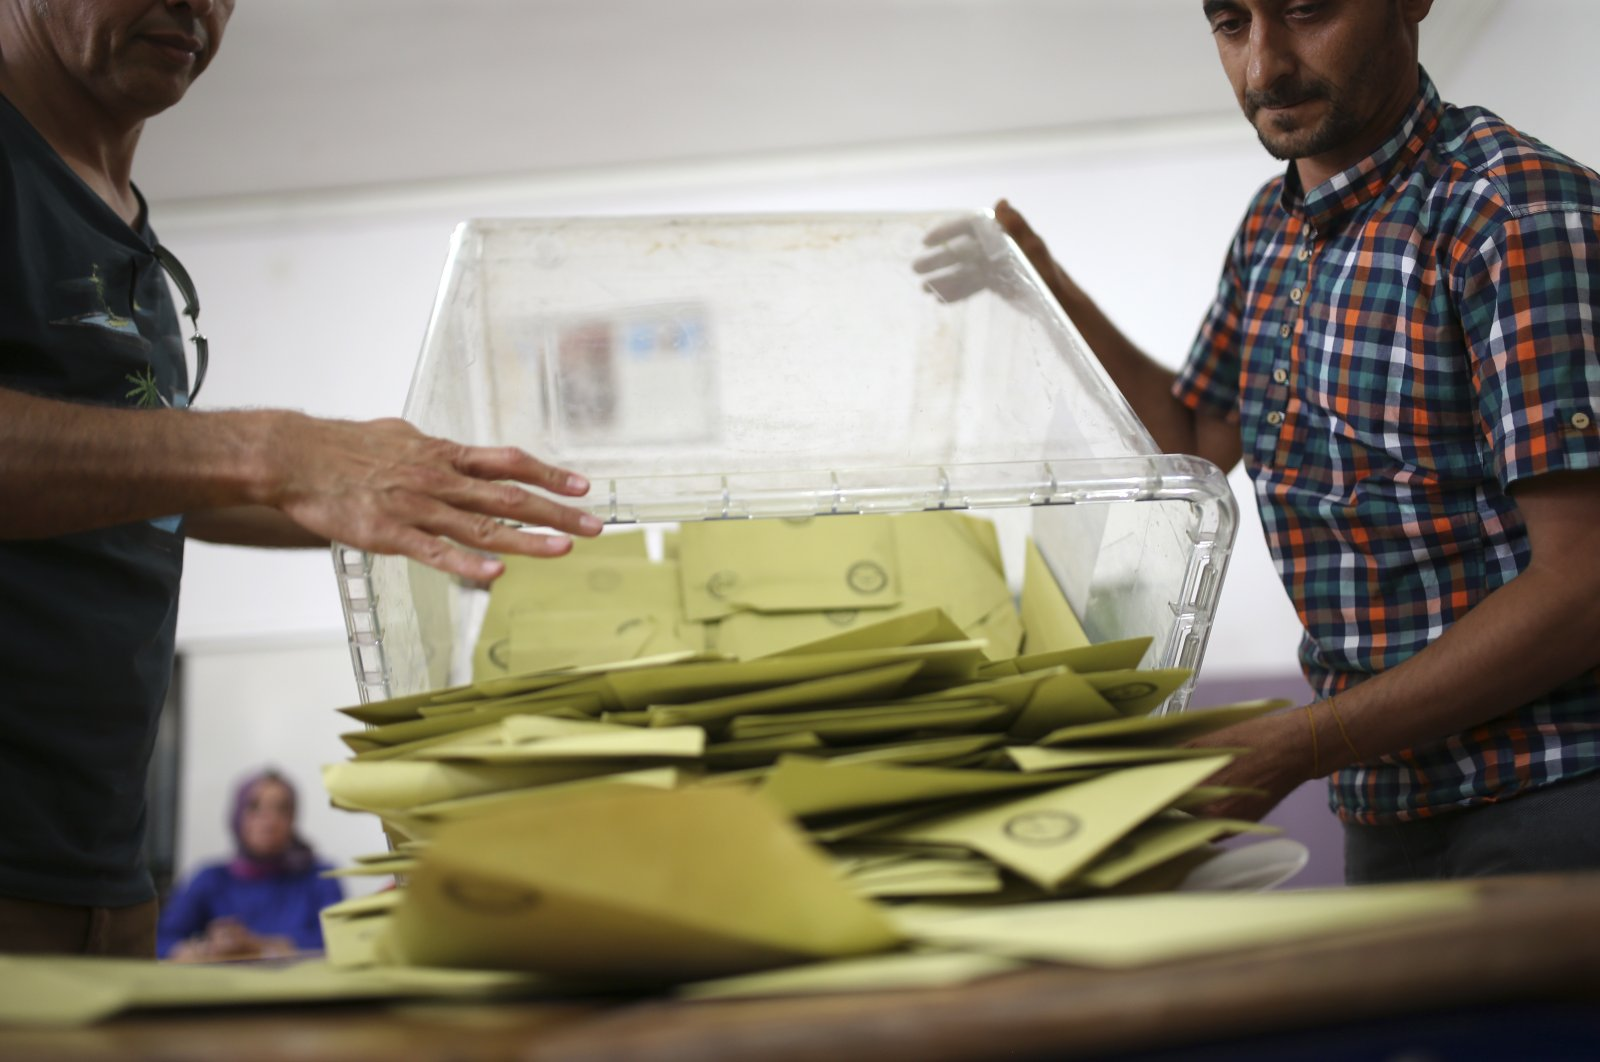 Election officials open a ballot box at a polling station in the city of Diyarbakır, southeastern Turkey, Sunday, June 24, 2018. (AP File Photo)